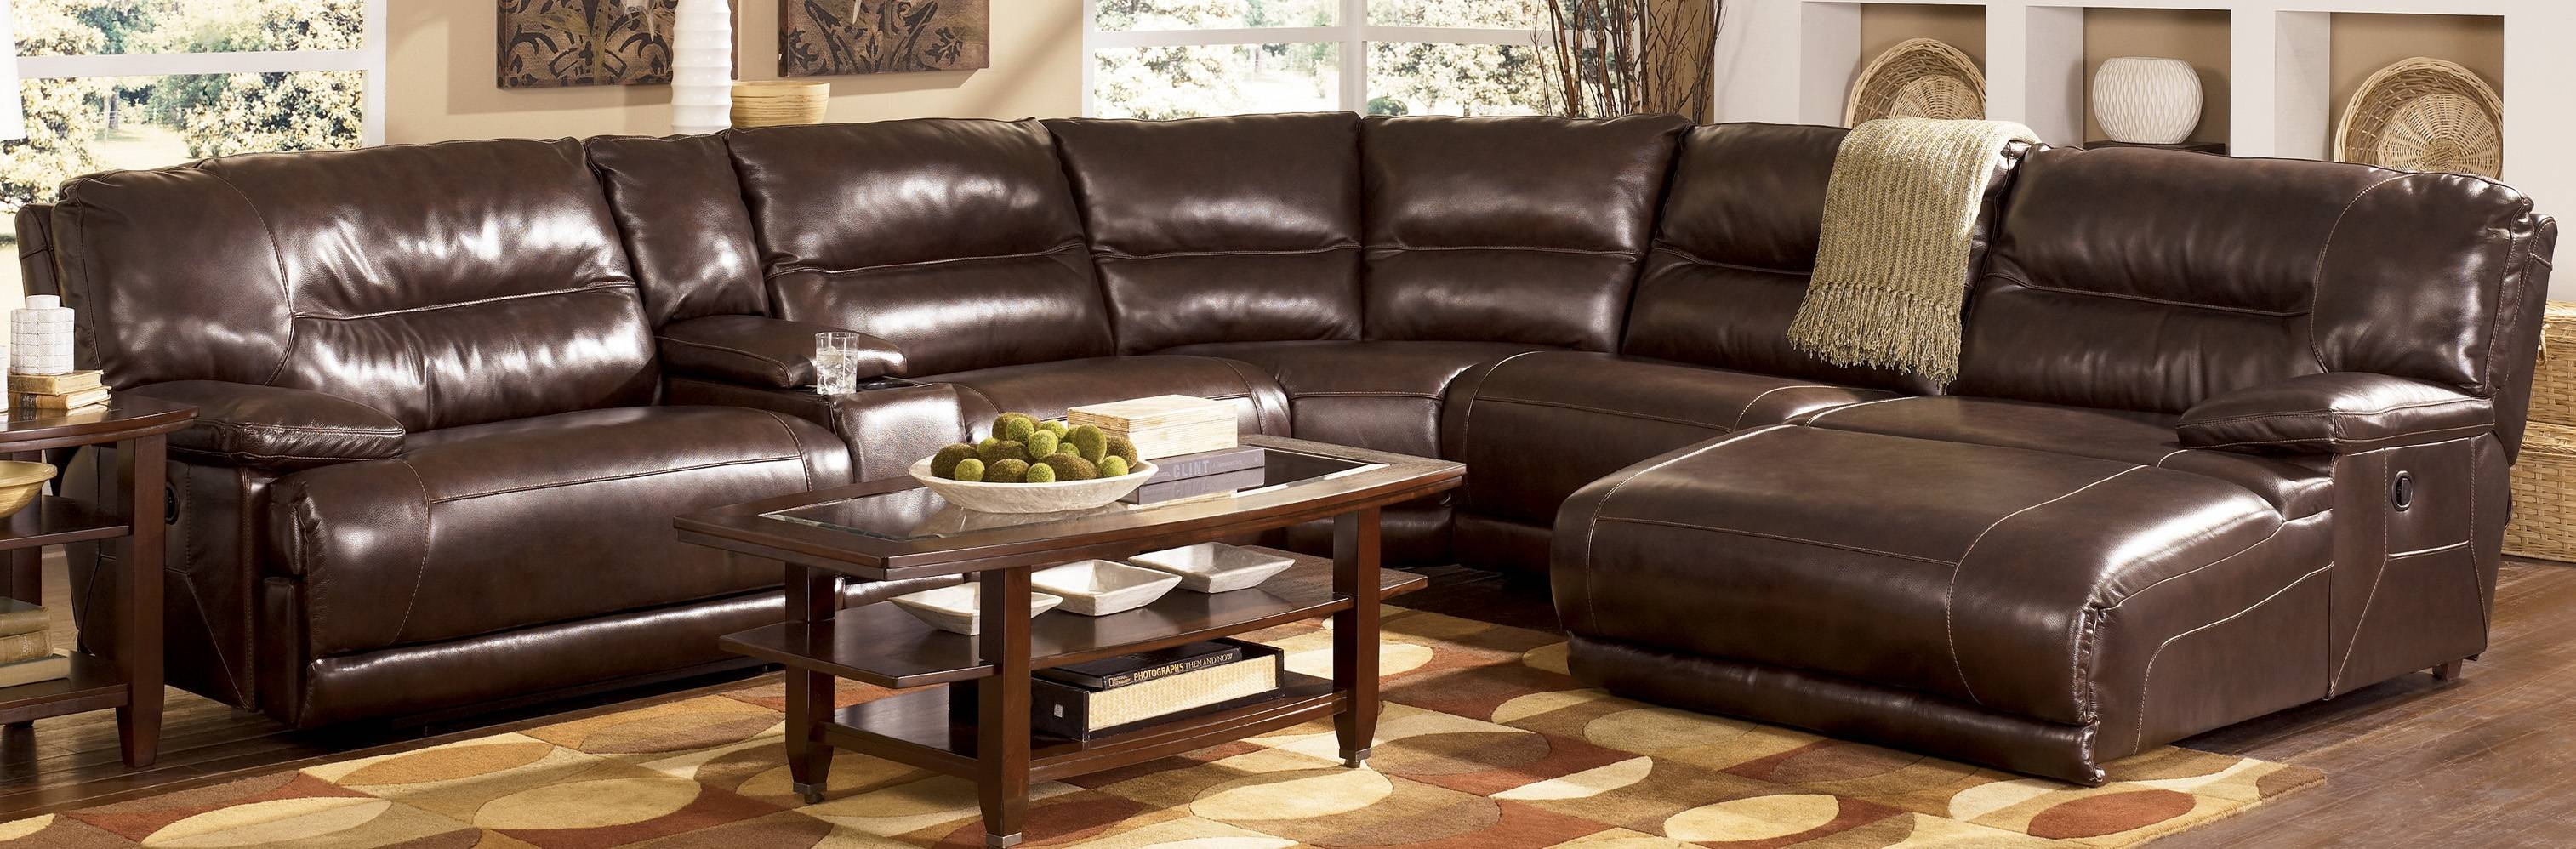 Furniture: Jedd Fabric Reclining Sectional Sofa | Sectional with Jedd Fabric Reclining Sectional Sofa (Image 15 of 30)